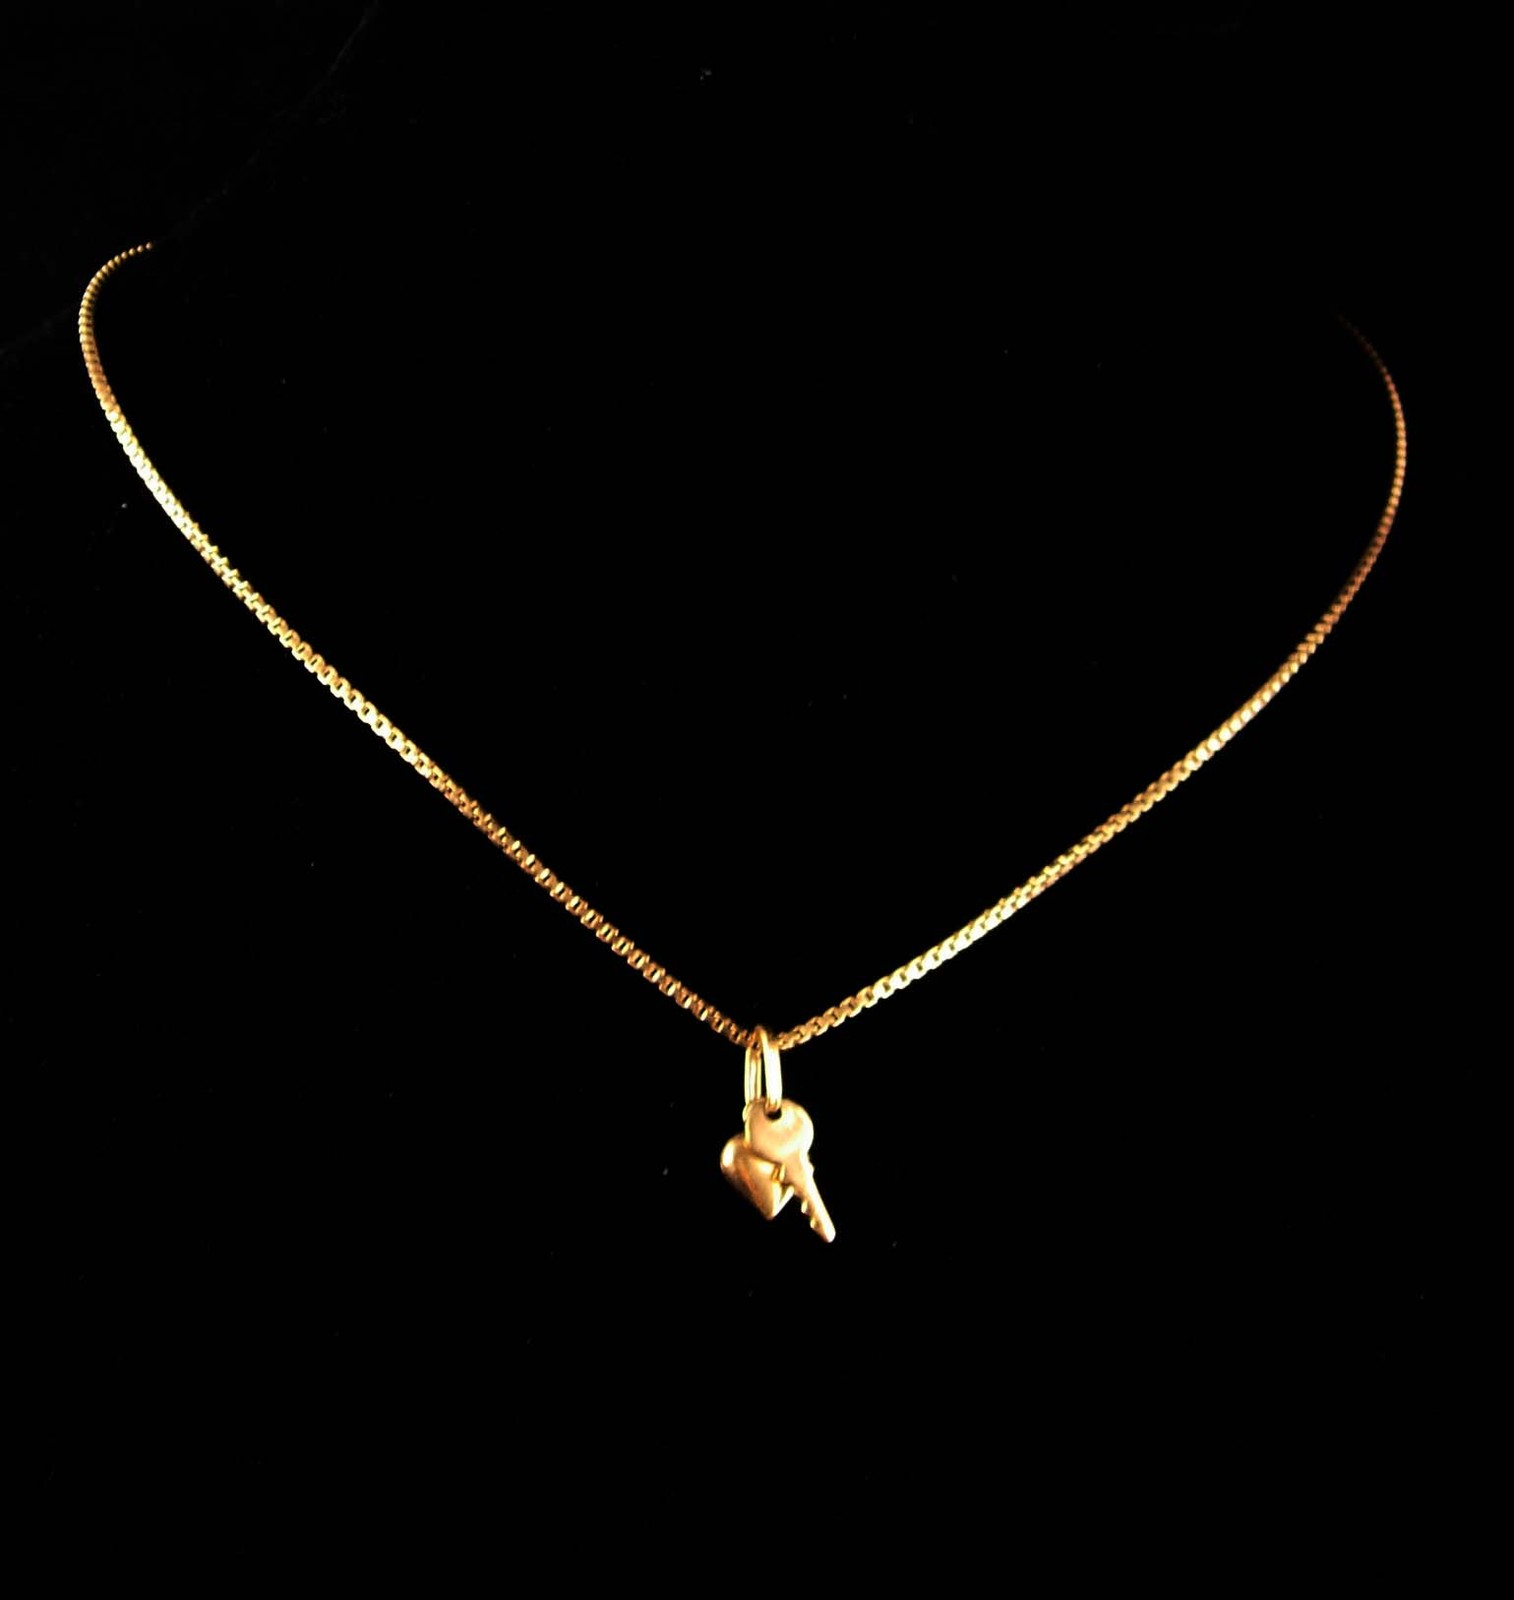 Vintage Monet Necklace - gold Heart and key charm - sweetheart jewelry - couture